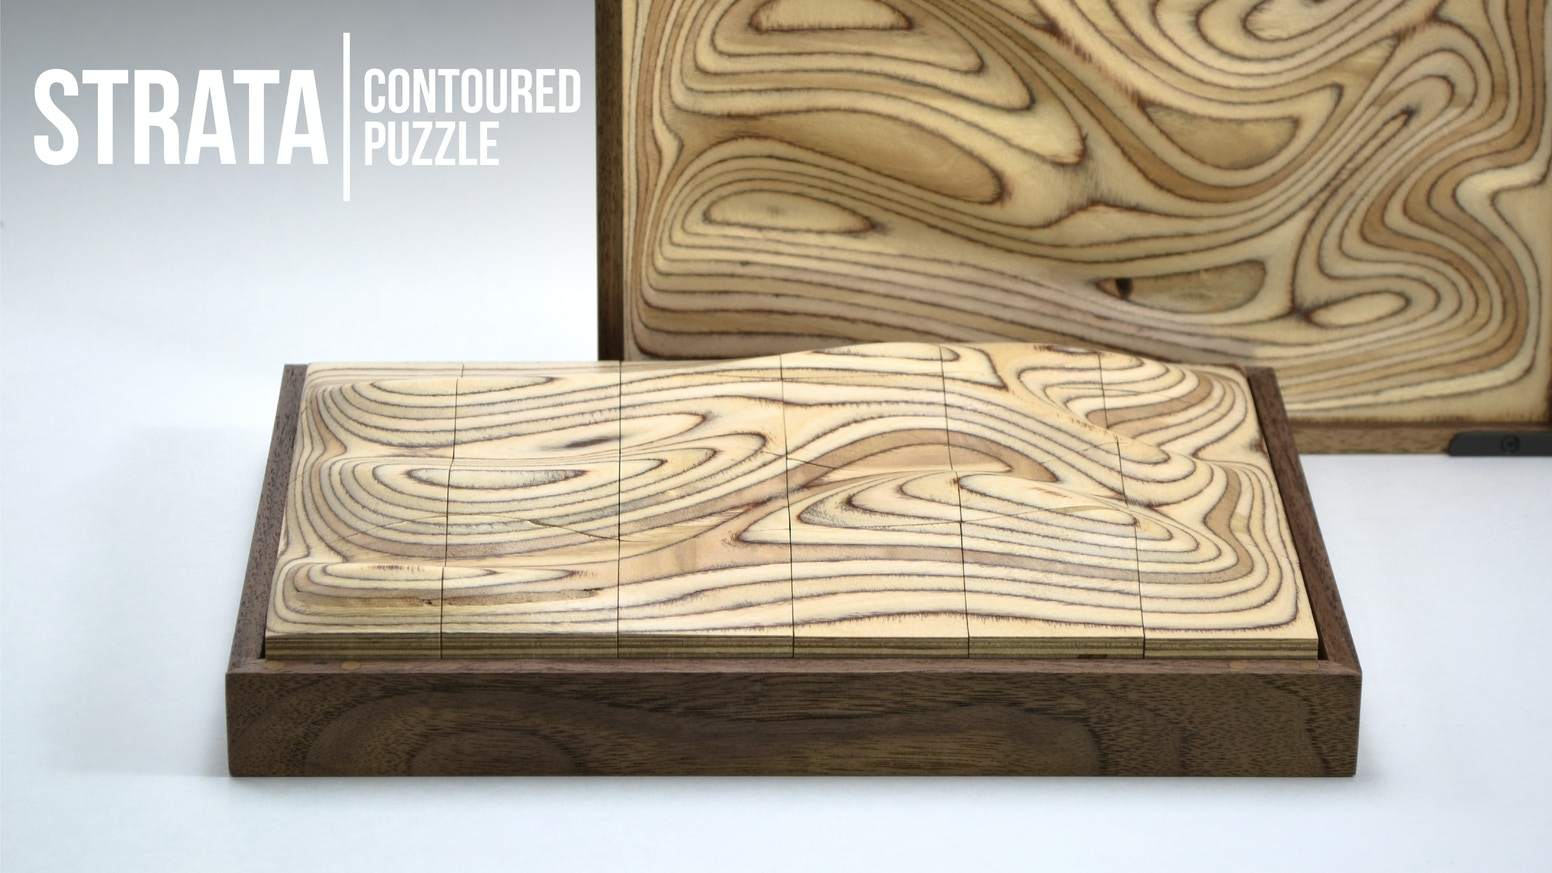 Crafted from multi-layered plywood, Strata's flowing surface blends tactile & visual cues to form a deceptively challenging puzzle.